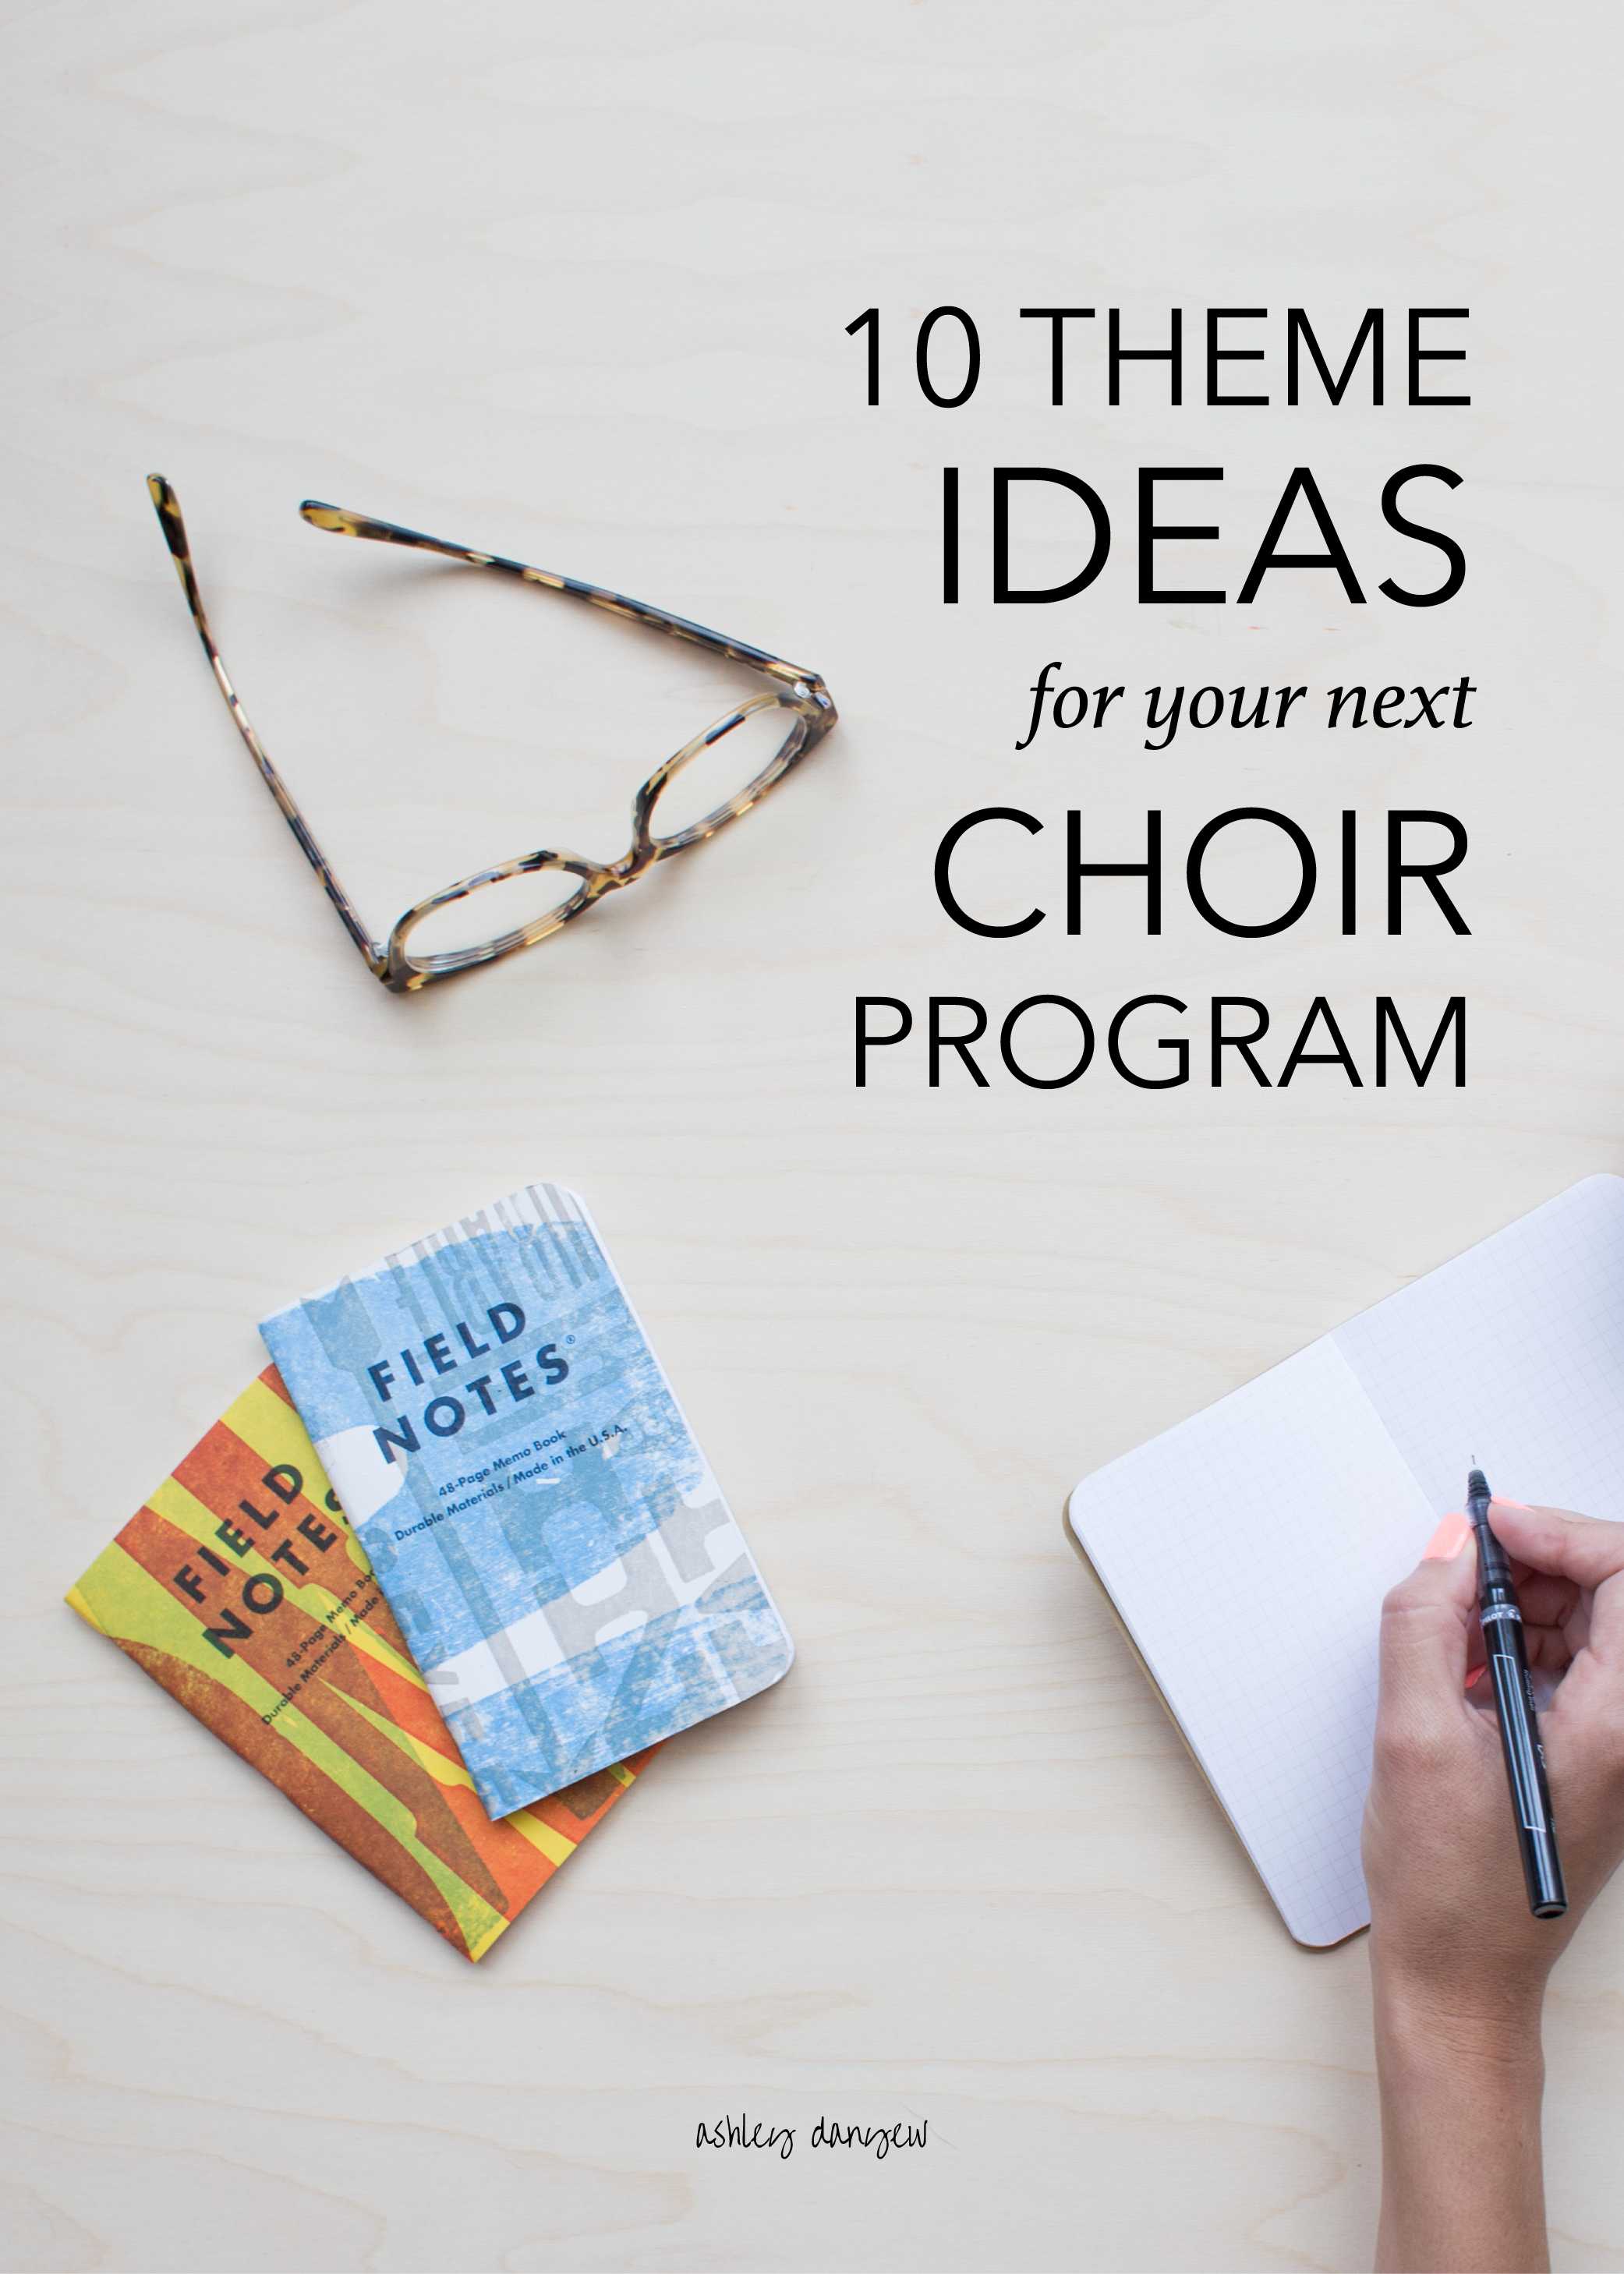 Copy of 10 Theme Ideas for Your Next Choir Program